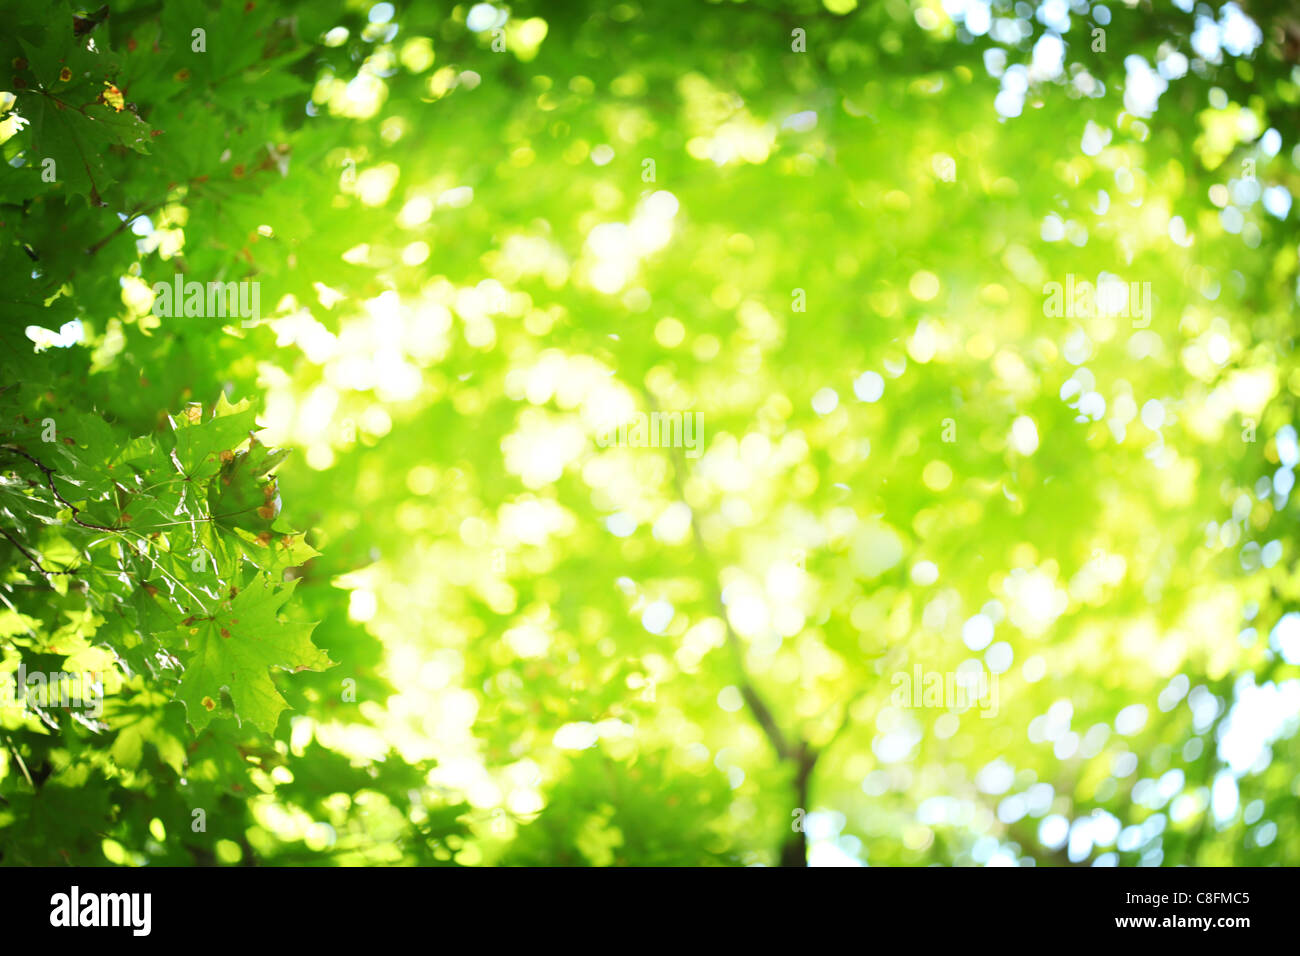 Abstract blurred background. Sun's rays shining through the lush greens. Stock Photo